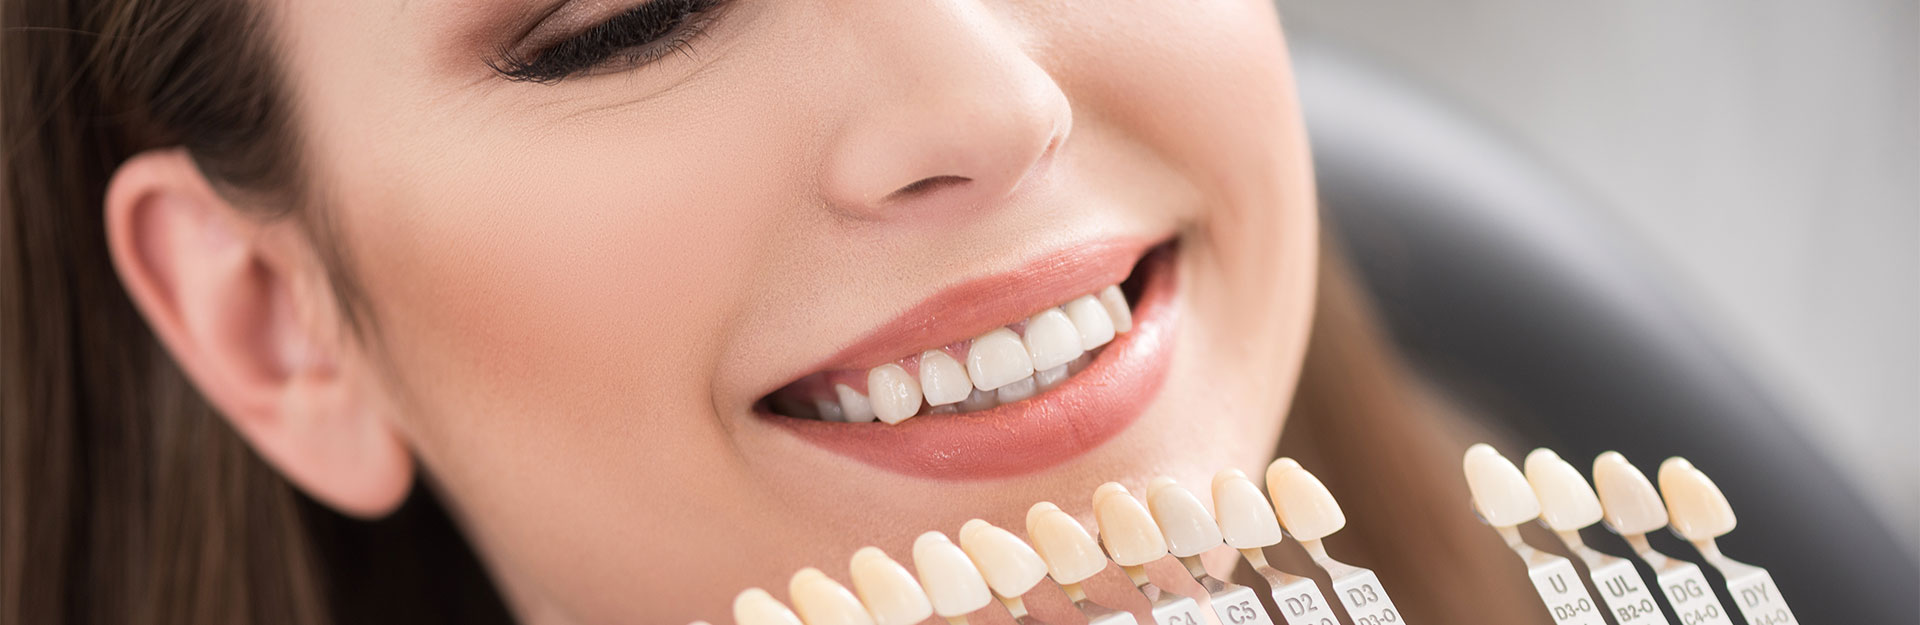 Replacing Your Dental Fillings